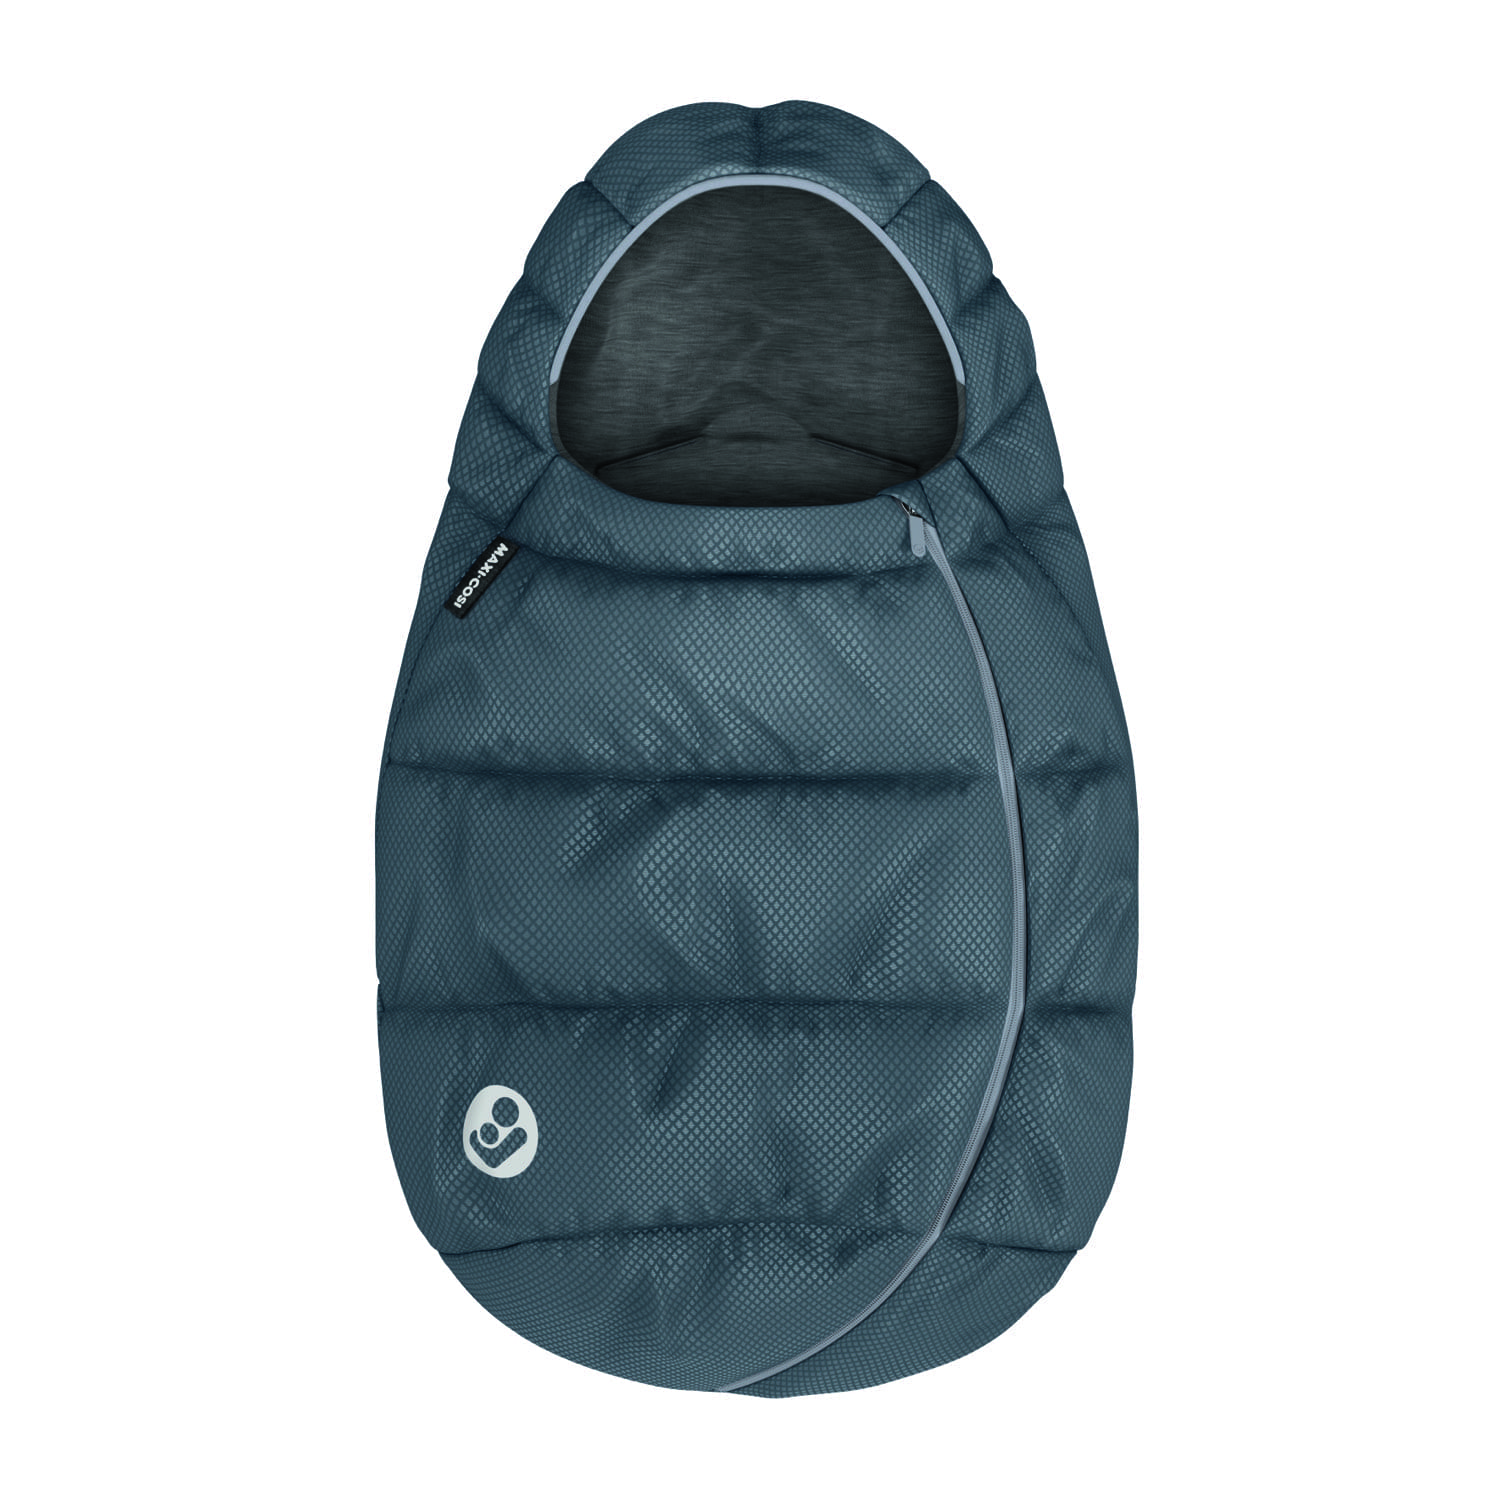 Graphite Maxi Cosi Infant Carrier Footmuff Essential product image